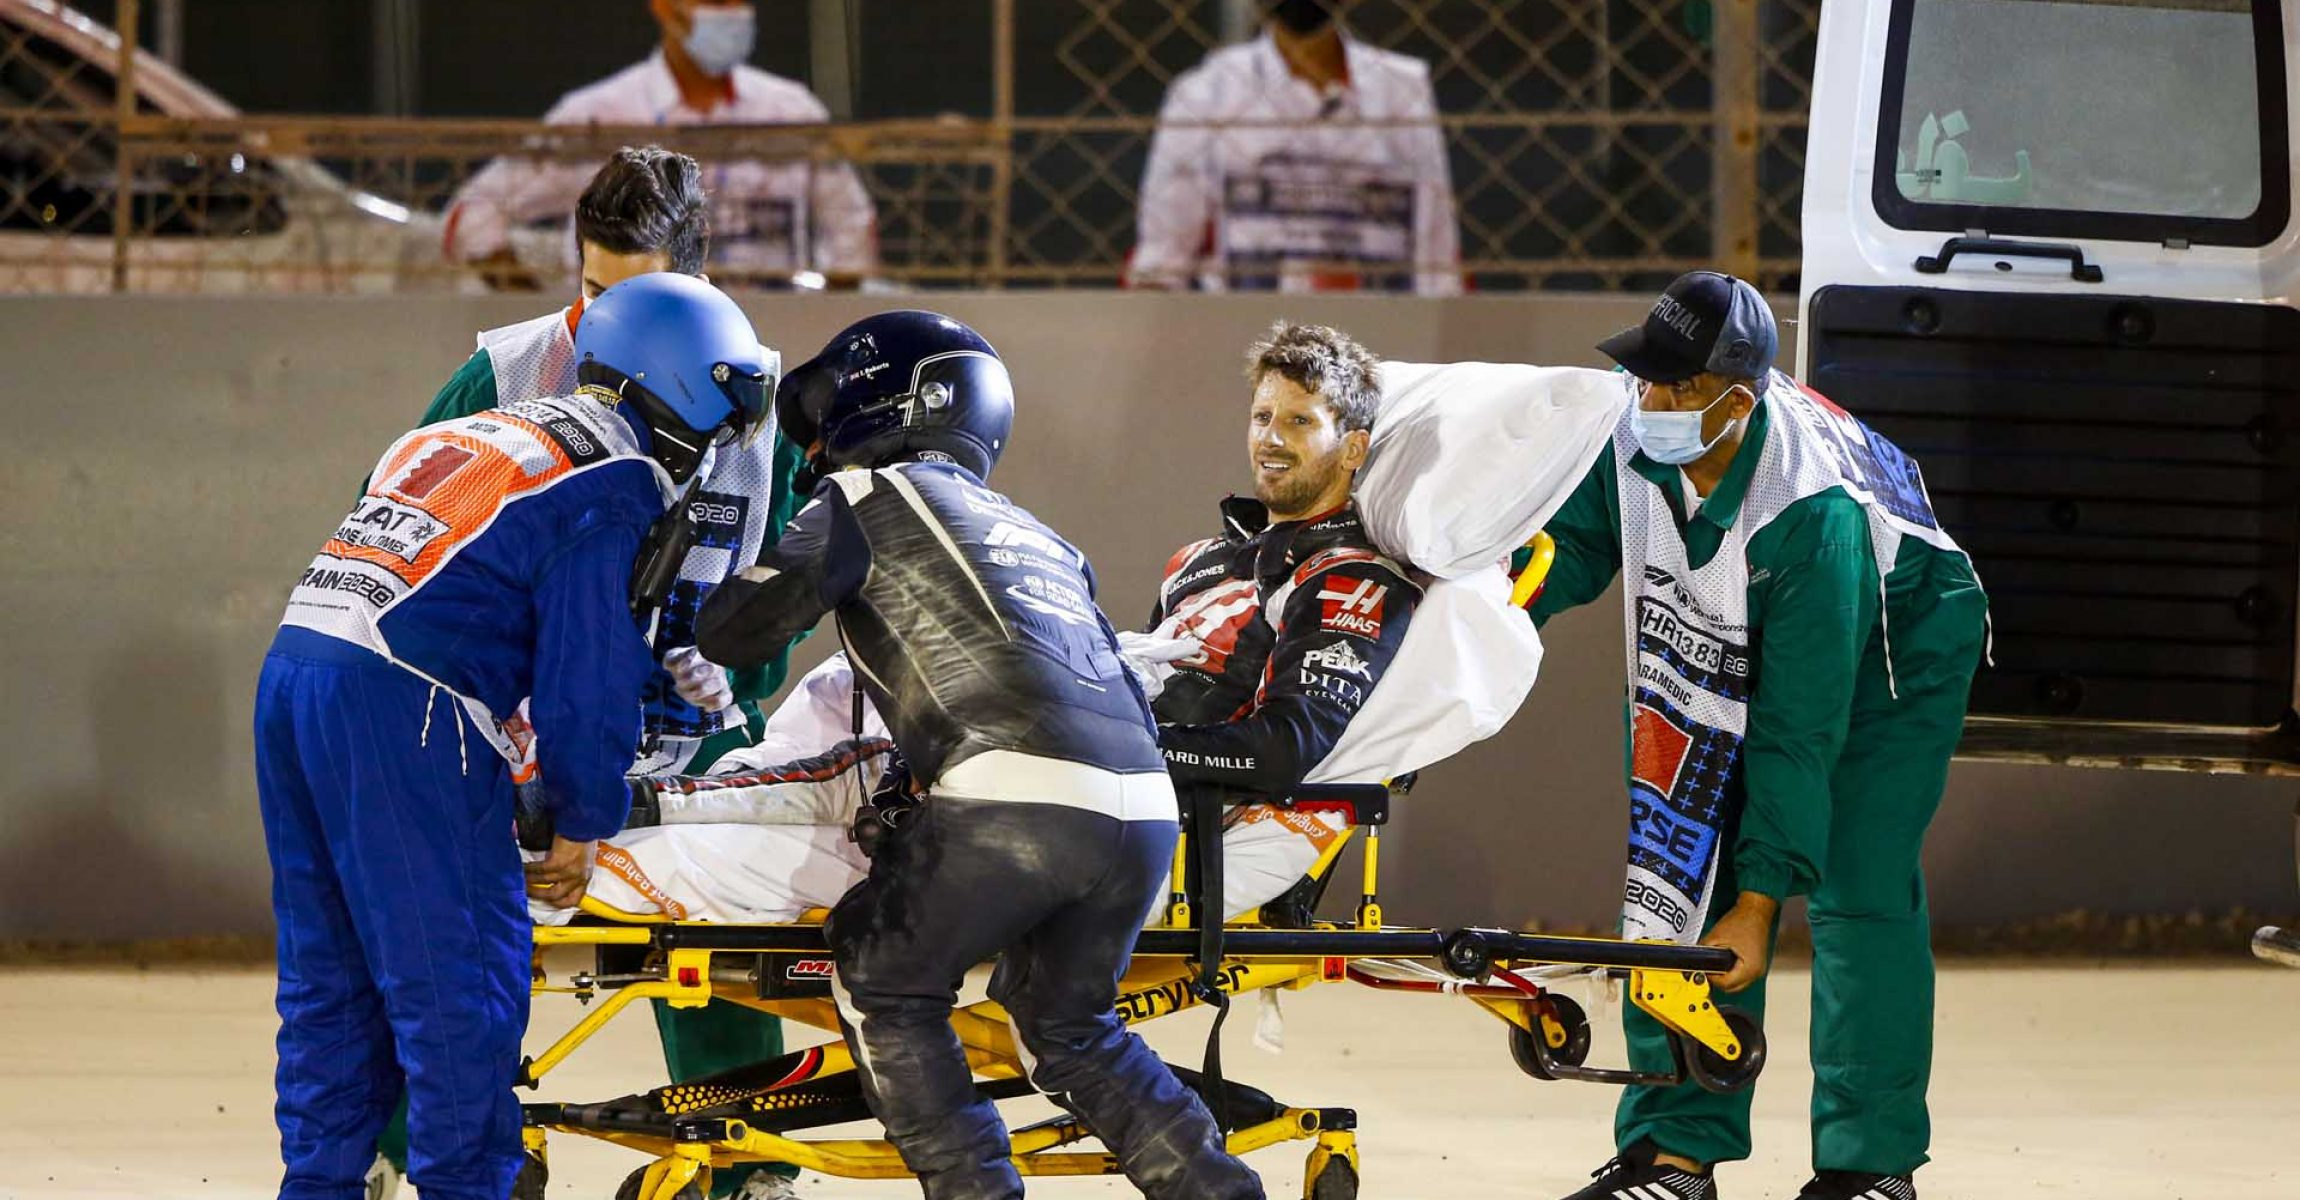 BAHRAIN INTERNATIONAL CIRCUIT, BAHRAIN - NOVEMBER 29: Romain Grosjean, Haas F1, is taken away on a stretcher after his opening lap crash during the Bahrain GP at Bahrain International Circuit on Sunday November 29, 2020 in Sakhir, Bahrain. (Photo by Andy Hone / LAT Images)